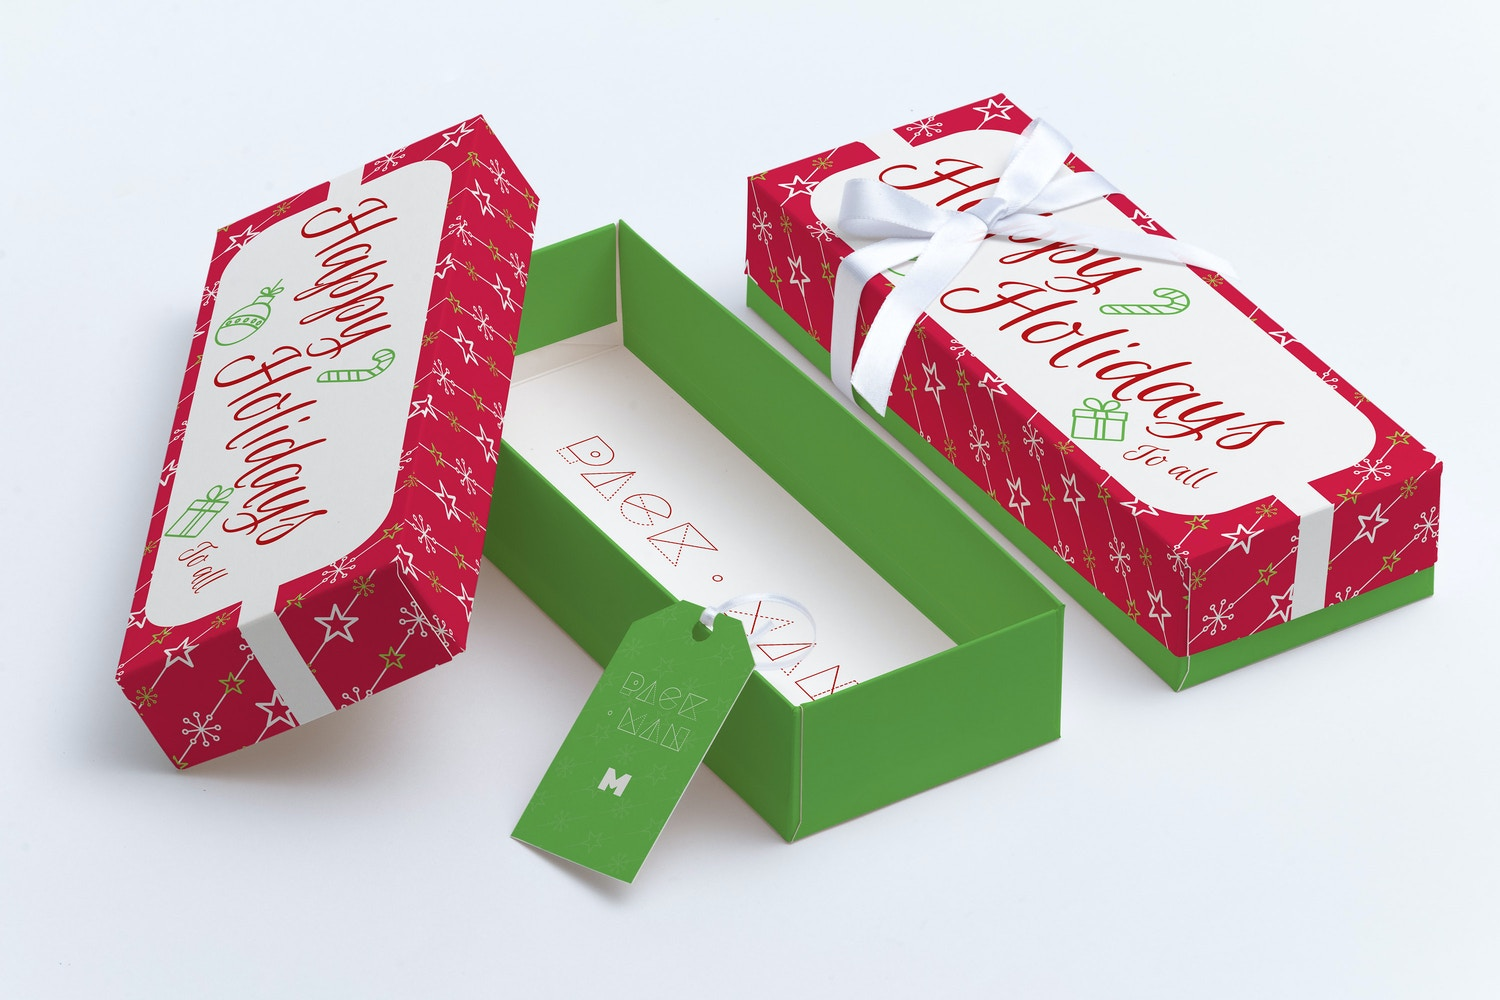 Rectangular Gift Box Mockup 03 by Ktyellow  on Original Mockups